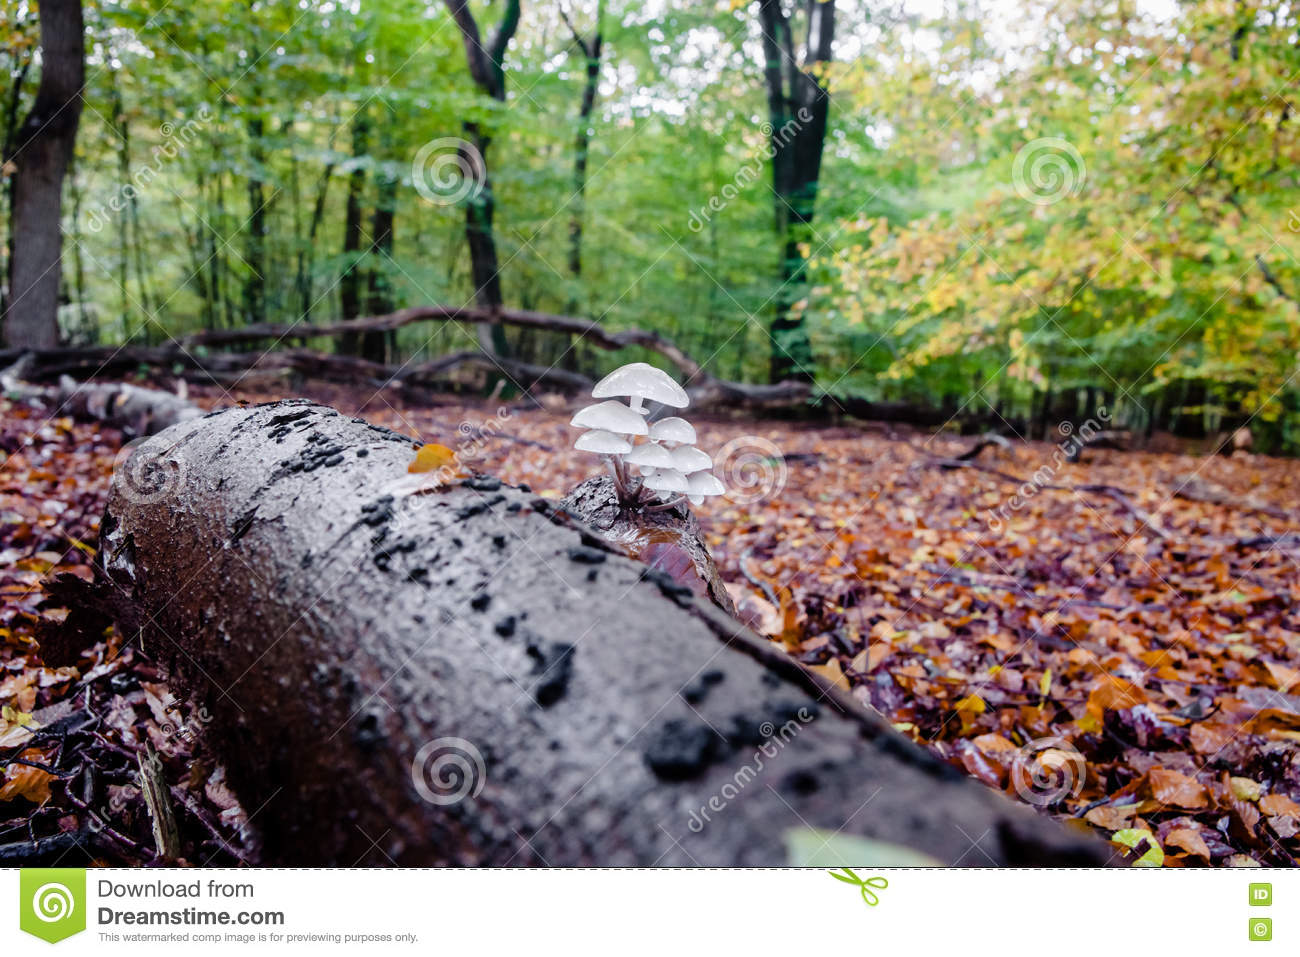 Wild Mushrooms At Autumn In Forrest Stock Photo - Image of green ...